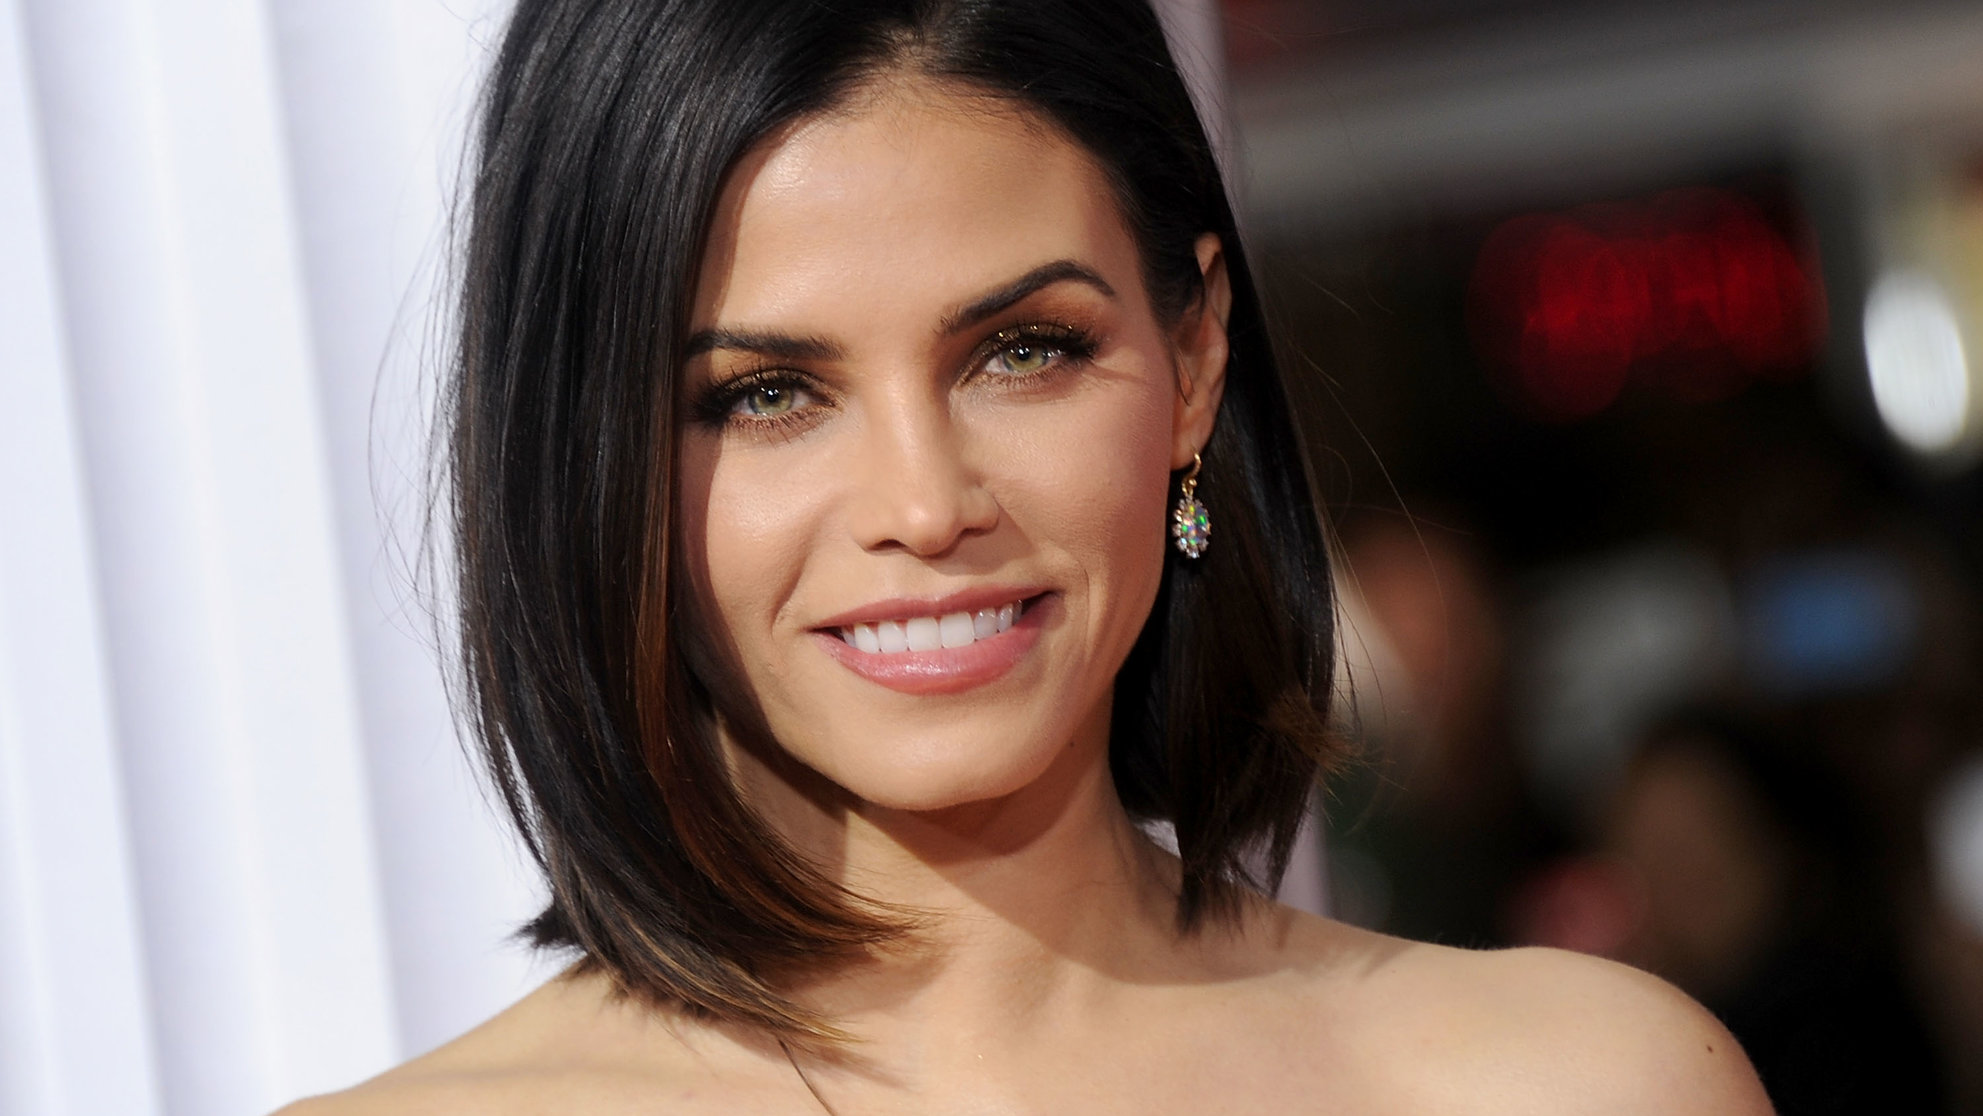 Jenna Dewan Tatum Snapchats a Natural Cough Remedy, But Does It Work?